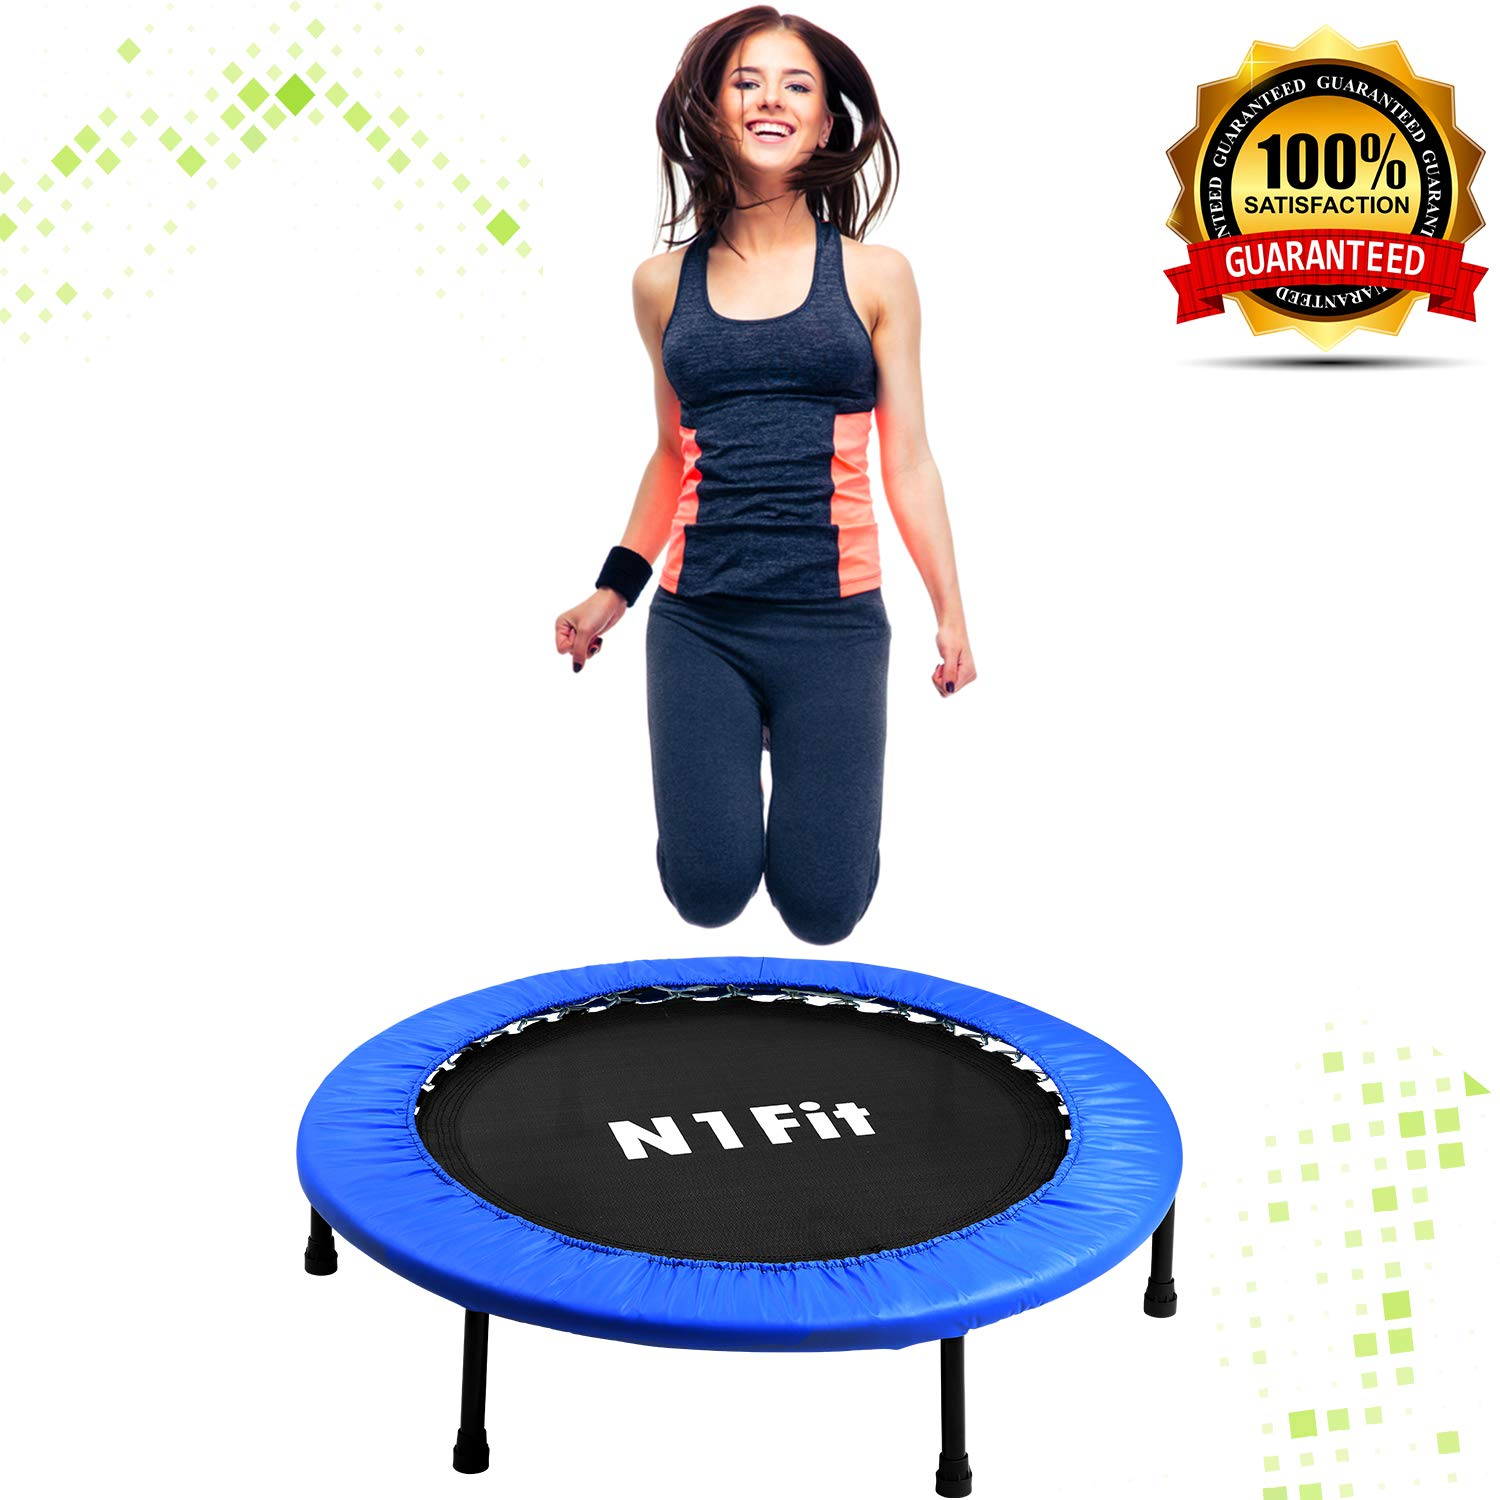 N1Fit Mini Trampoline for Adults - Exercise Trampoline, Mini Trampolines, Personal Trampoline, Trampoline Small Indoor, Rebounding Tiny Trampoline with Springs System for Home Cardio Workouts 40'' by N1Fit (Image #9)